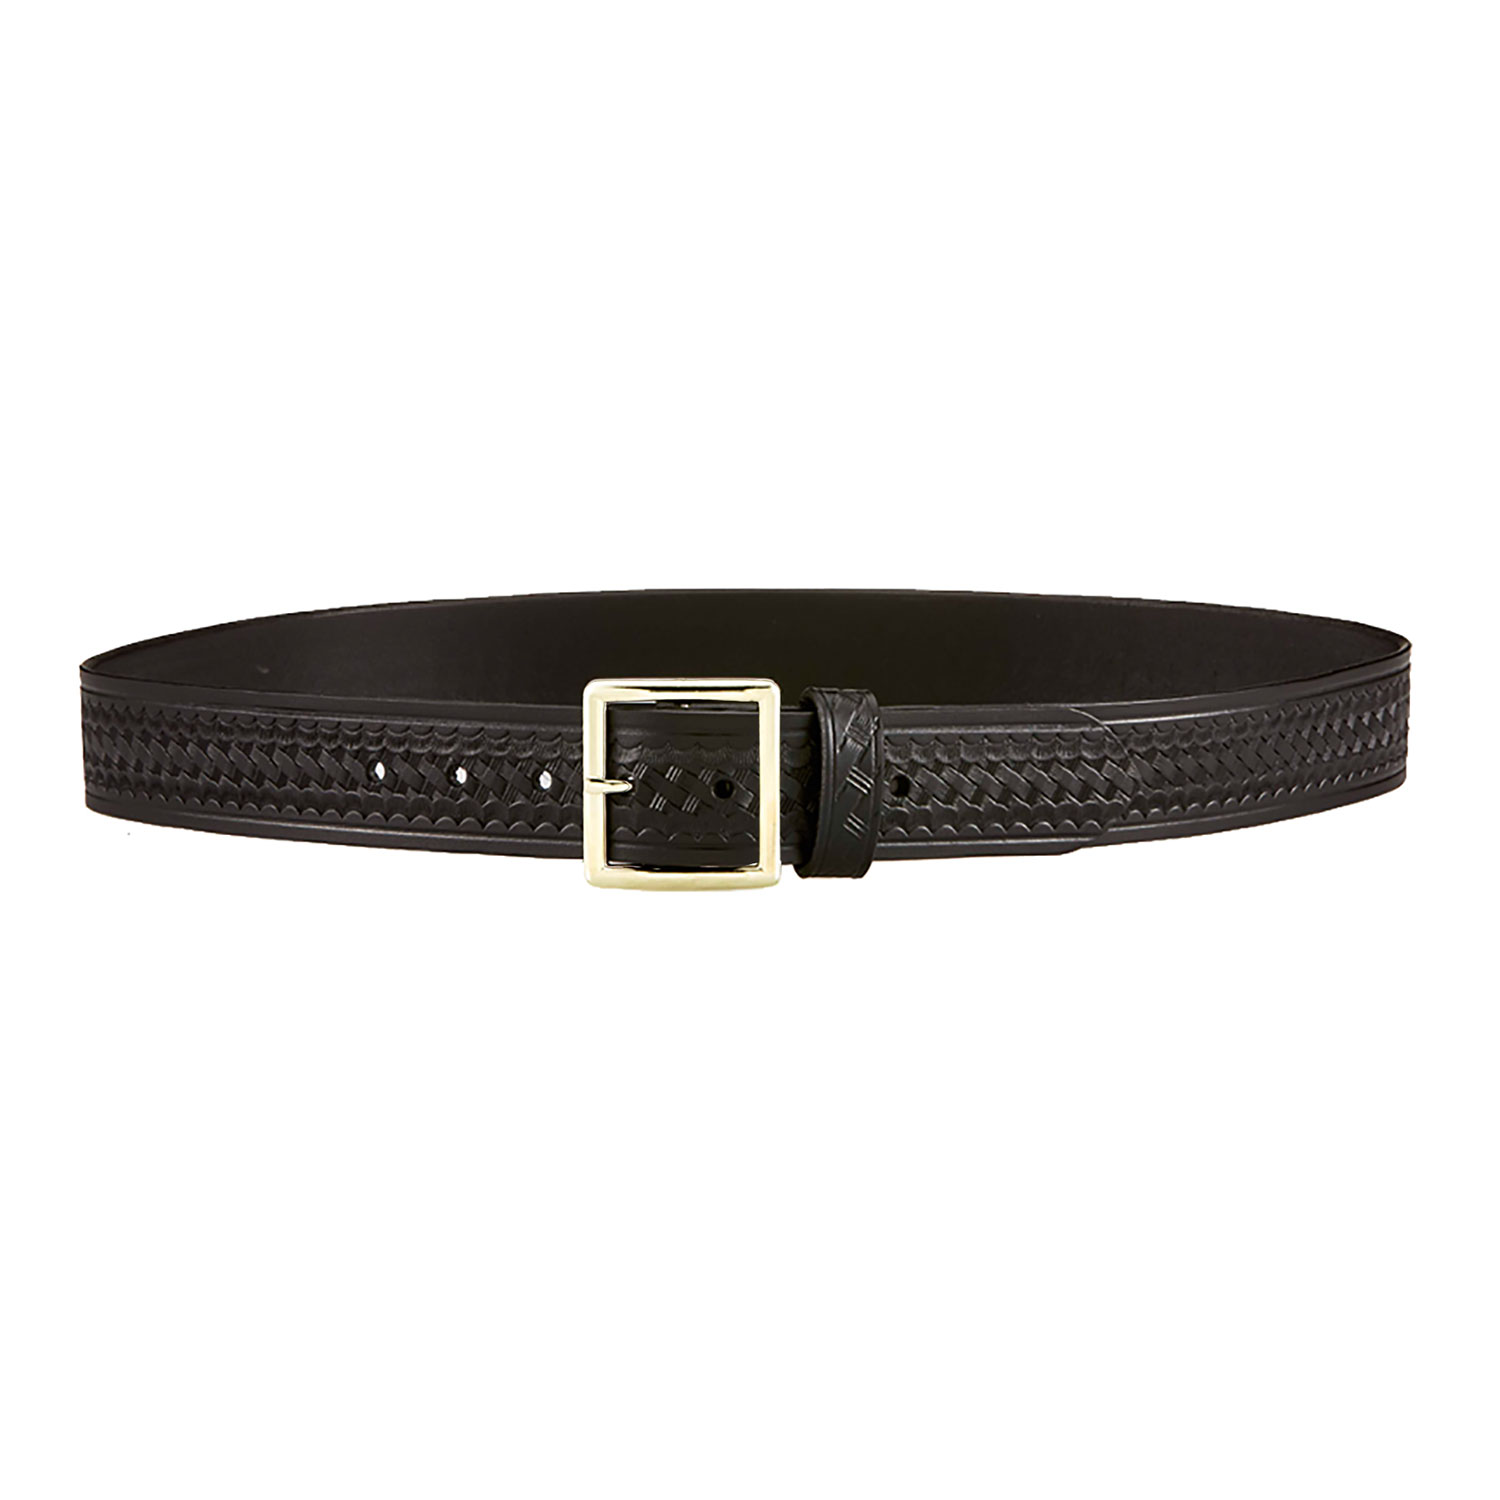 Aker Garrison Belt 1.5 With Buckle